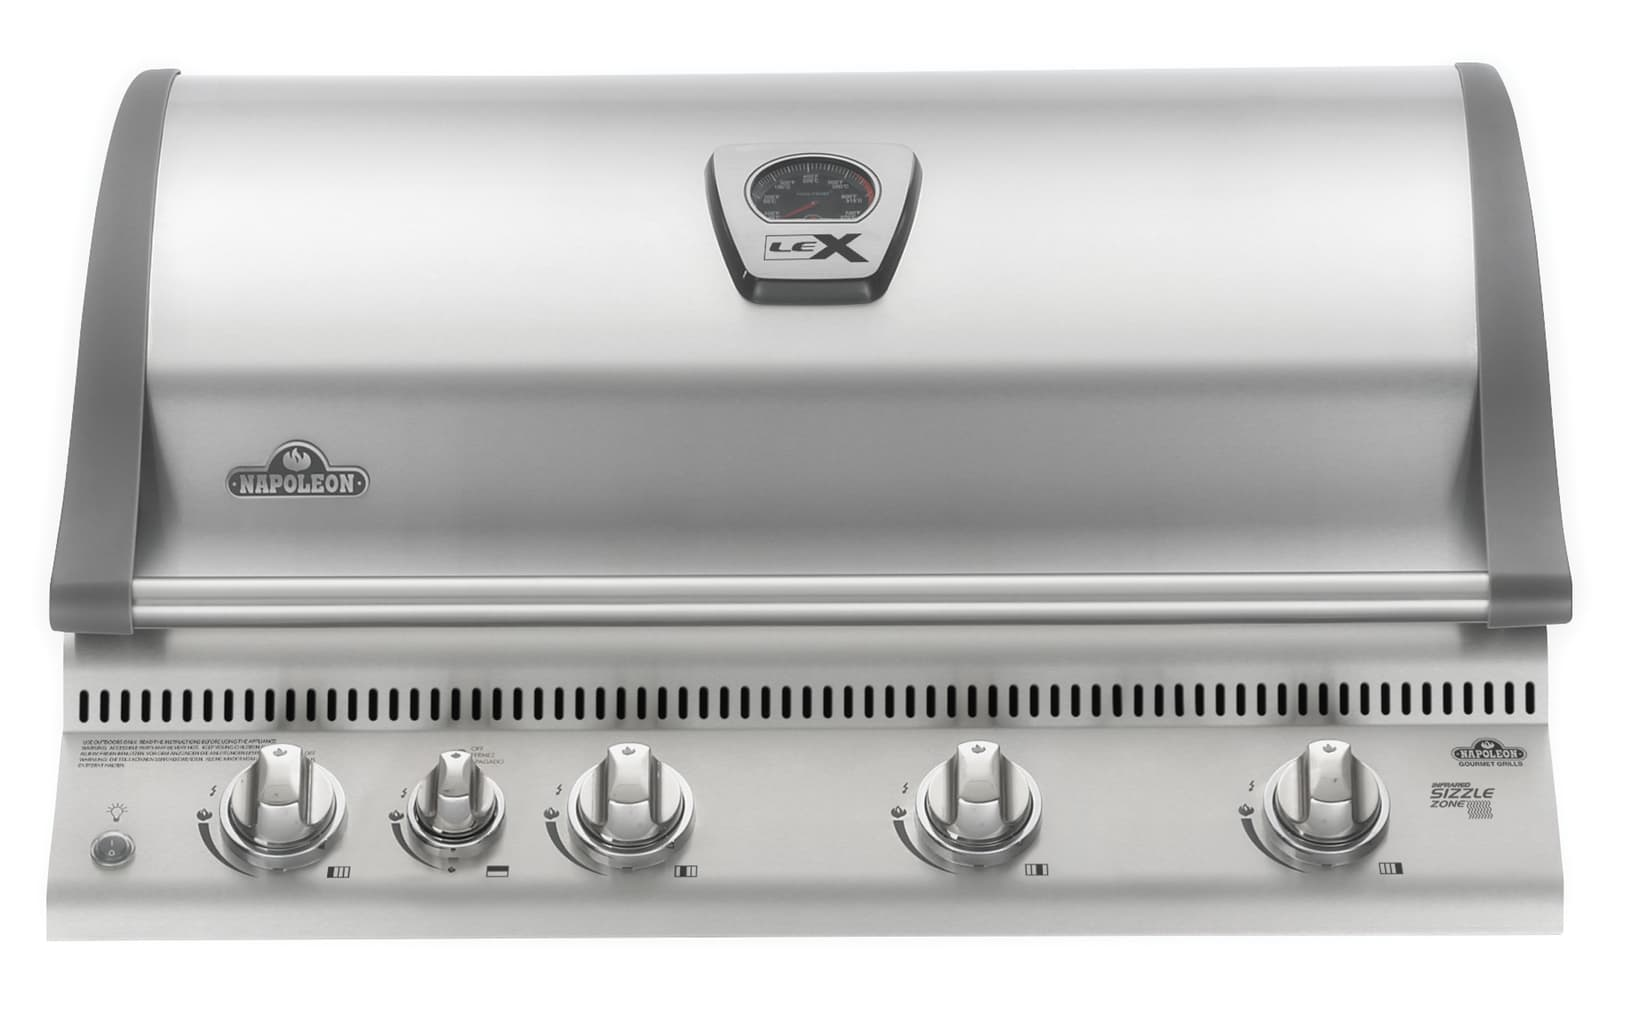 Napoleon Built-in LEX 605 with Infrared Bottom and Rear Burners - Stainless Steel - Natural Gas